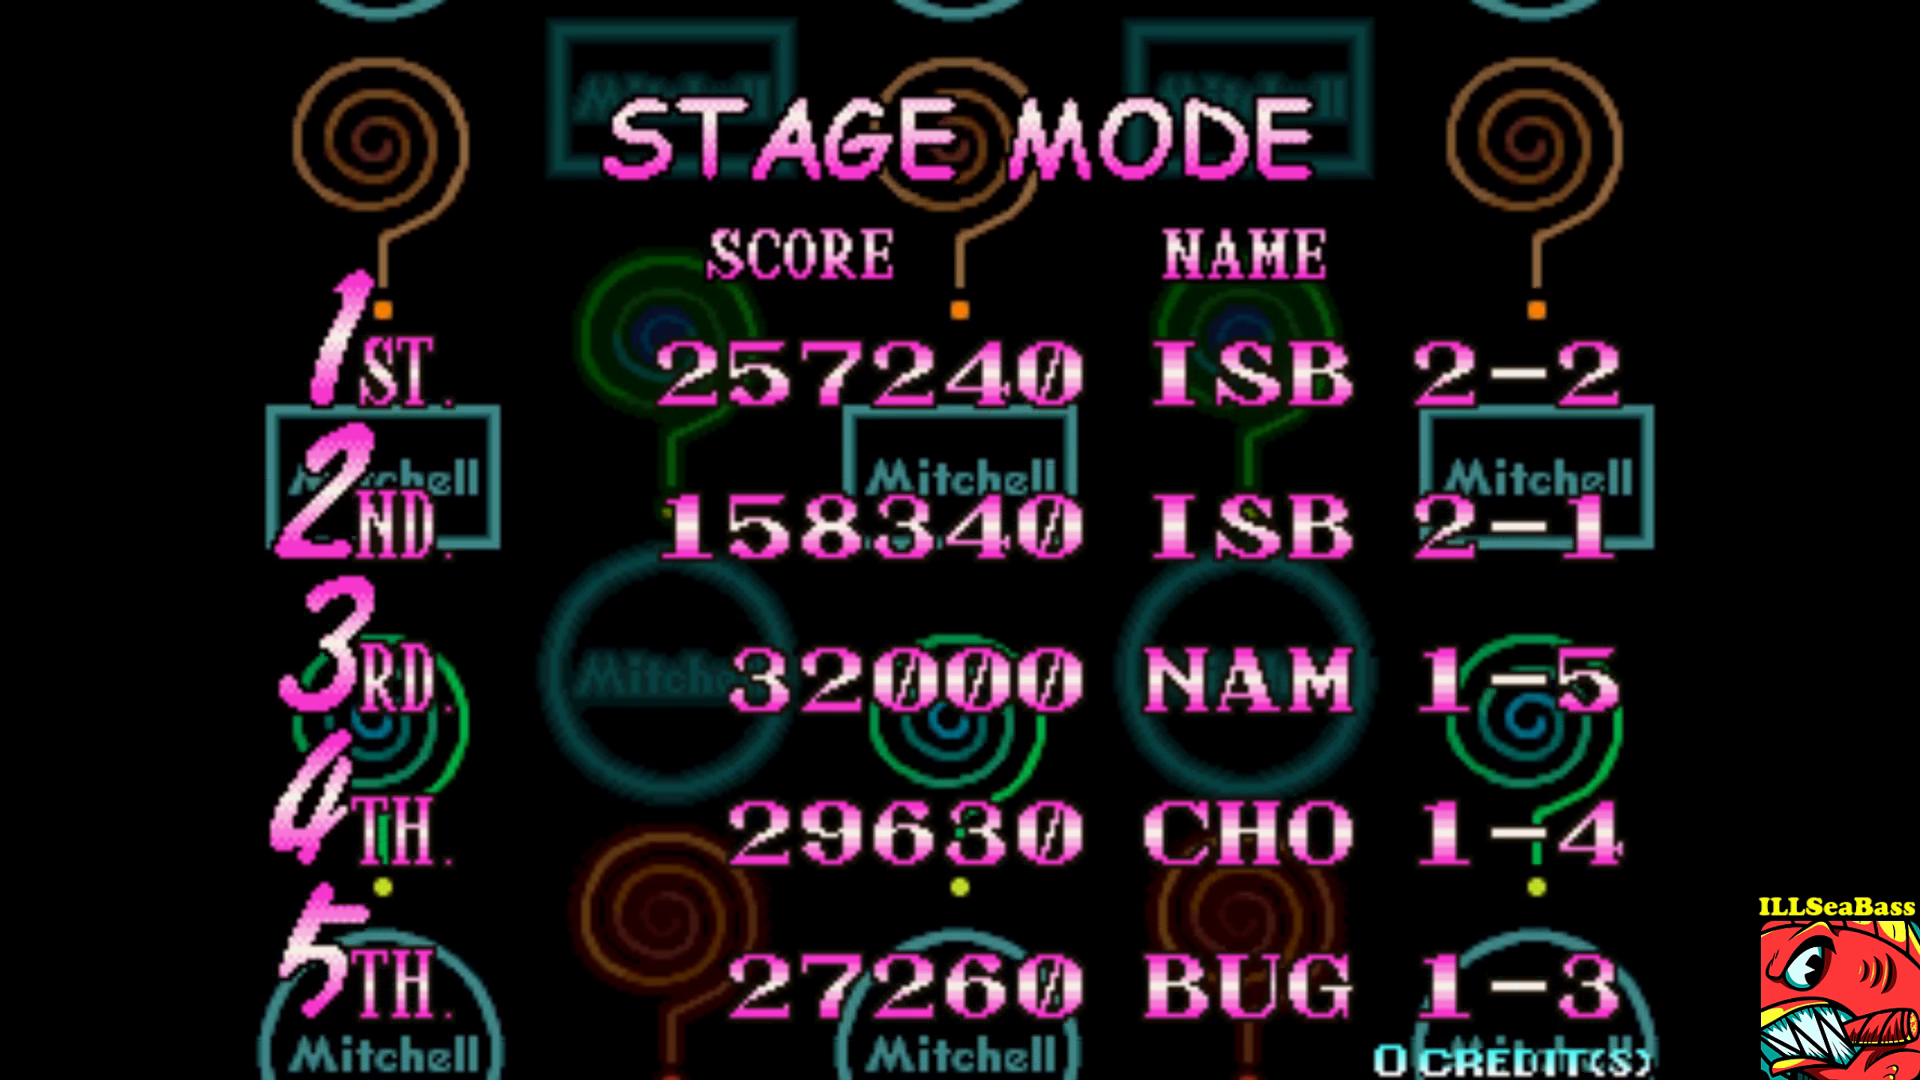 ILLSeaBass: Puzz Loop [Stage Mode] [puzzloop] (Arcade Emulated / M.A.M.E.) 257,240 points on 2017-09-17 20:47:32